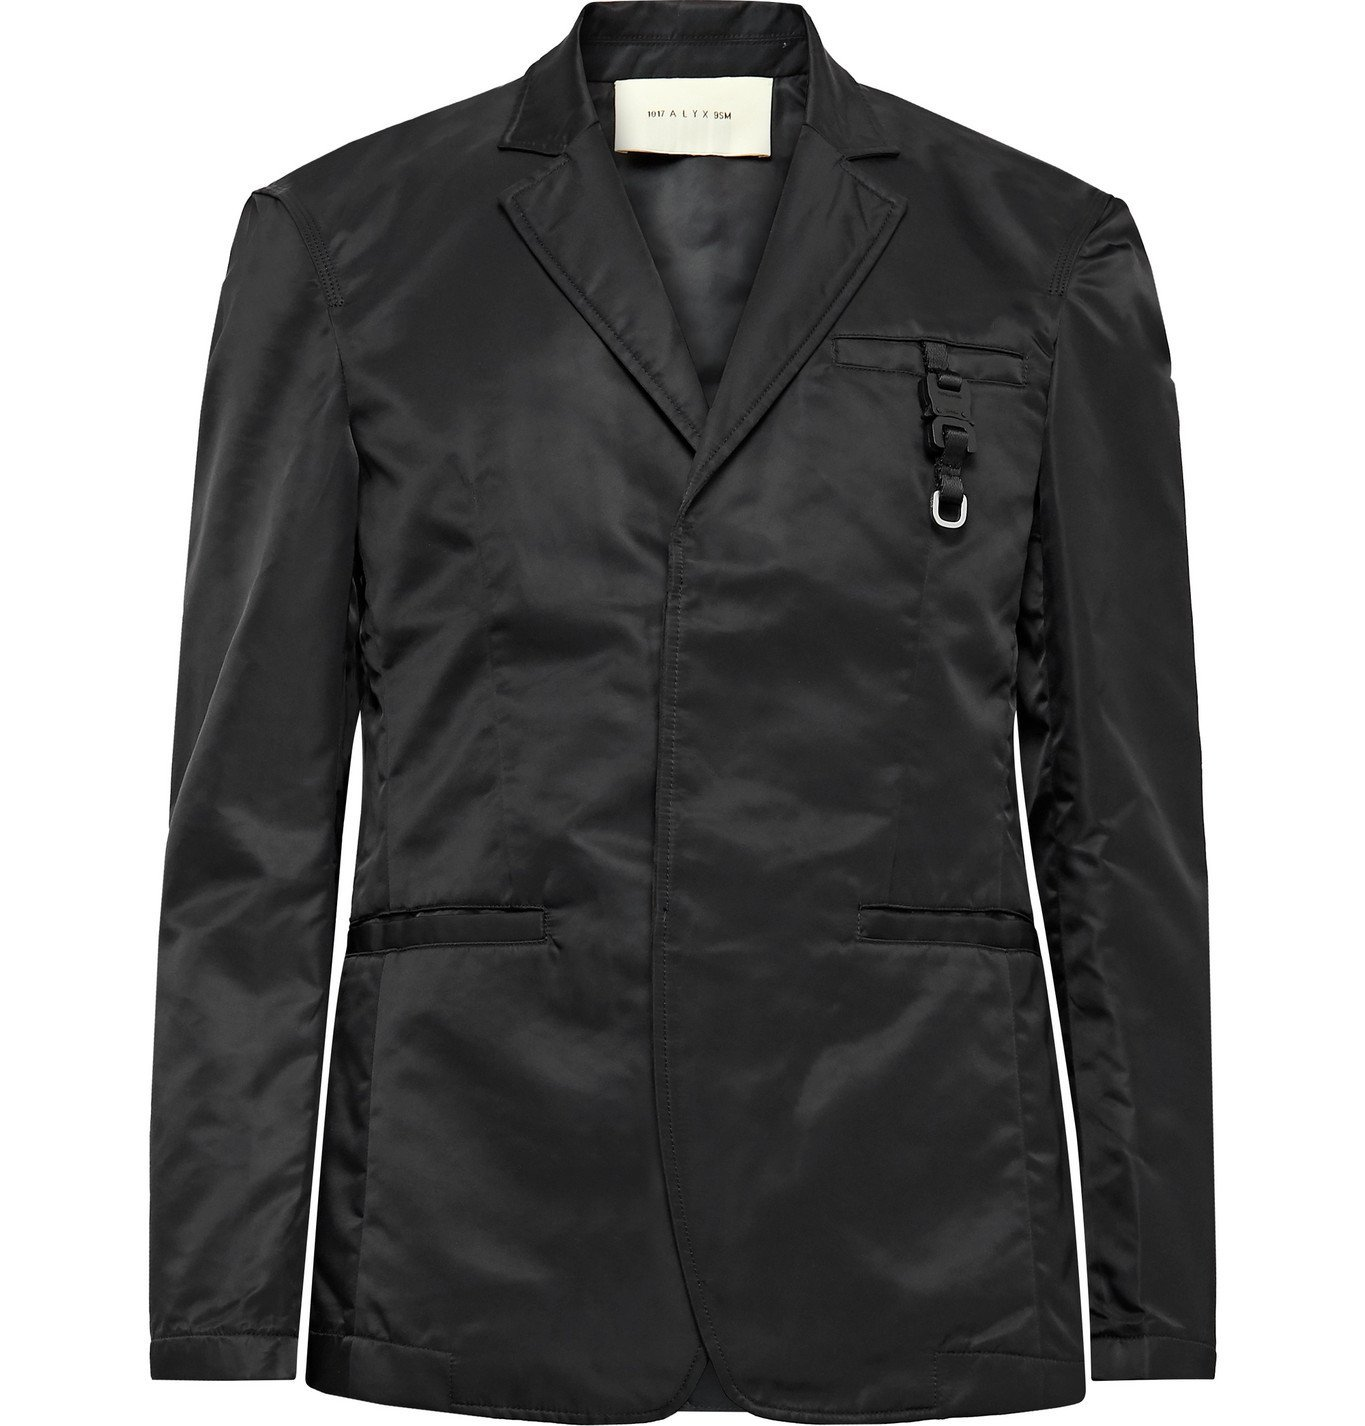 Photo: 1017 ALYX 9SM - Slim-Fit Nylon Blazer - Black